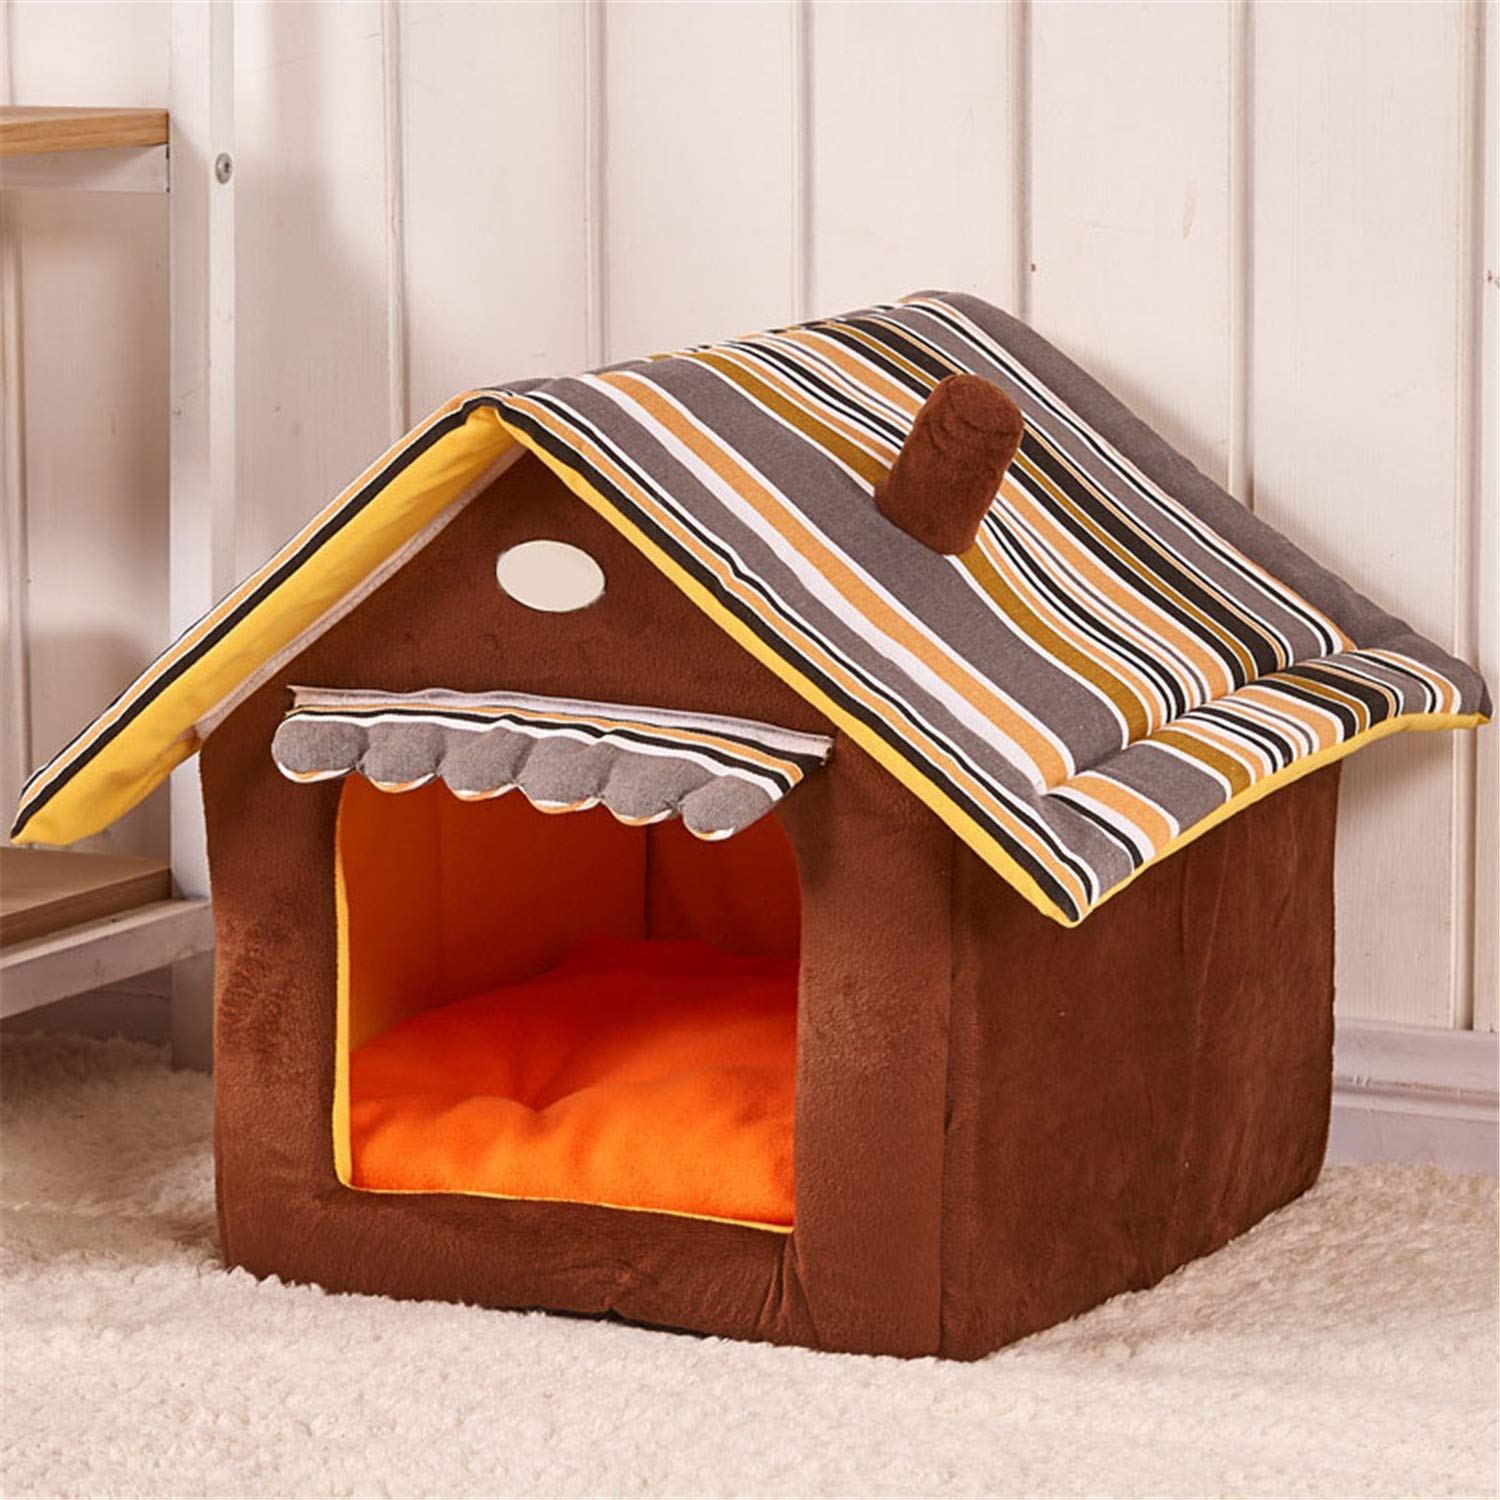 Brown M Brown M Fashion Striped Removable Cover Mat Dog House Dog Beds for Small Medium Dogs Pet Products House Pet Beds for Cat